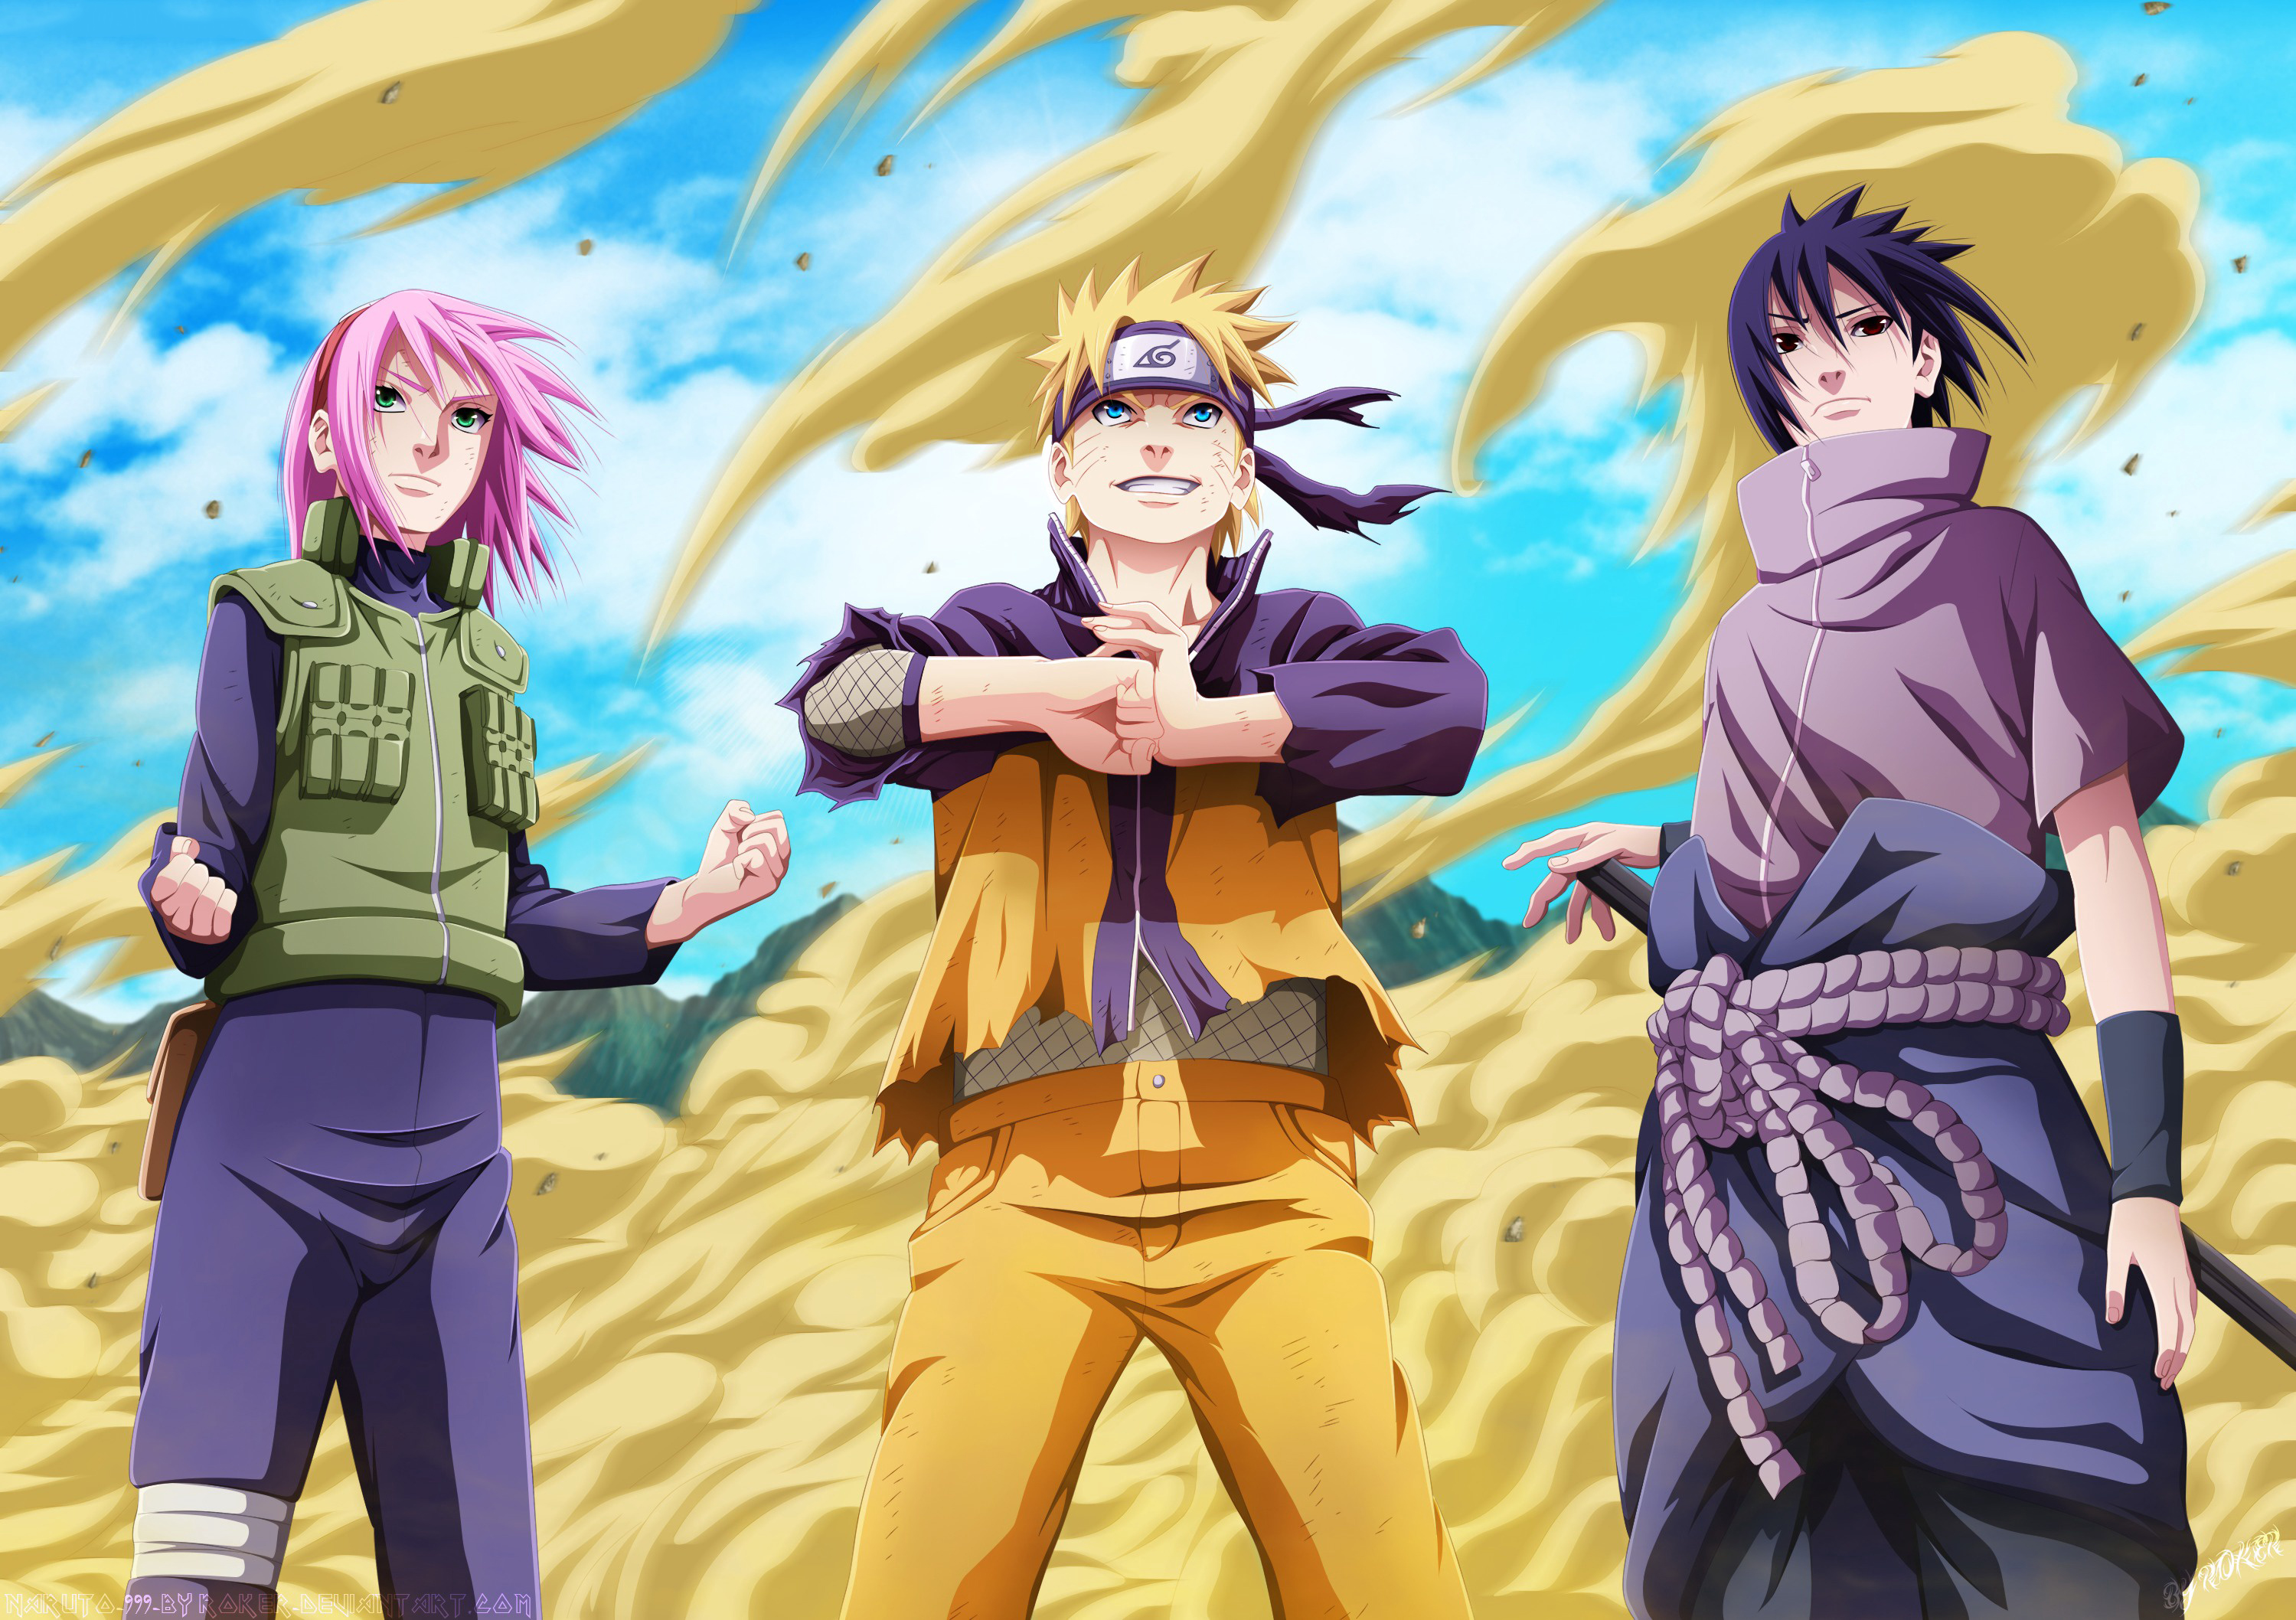 Sakura,Naruto And Sasuke (Day Version) Fondo De Pantalla